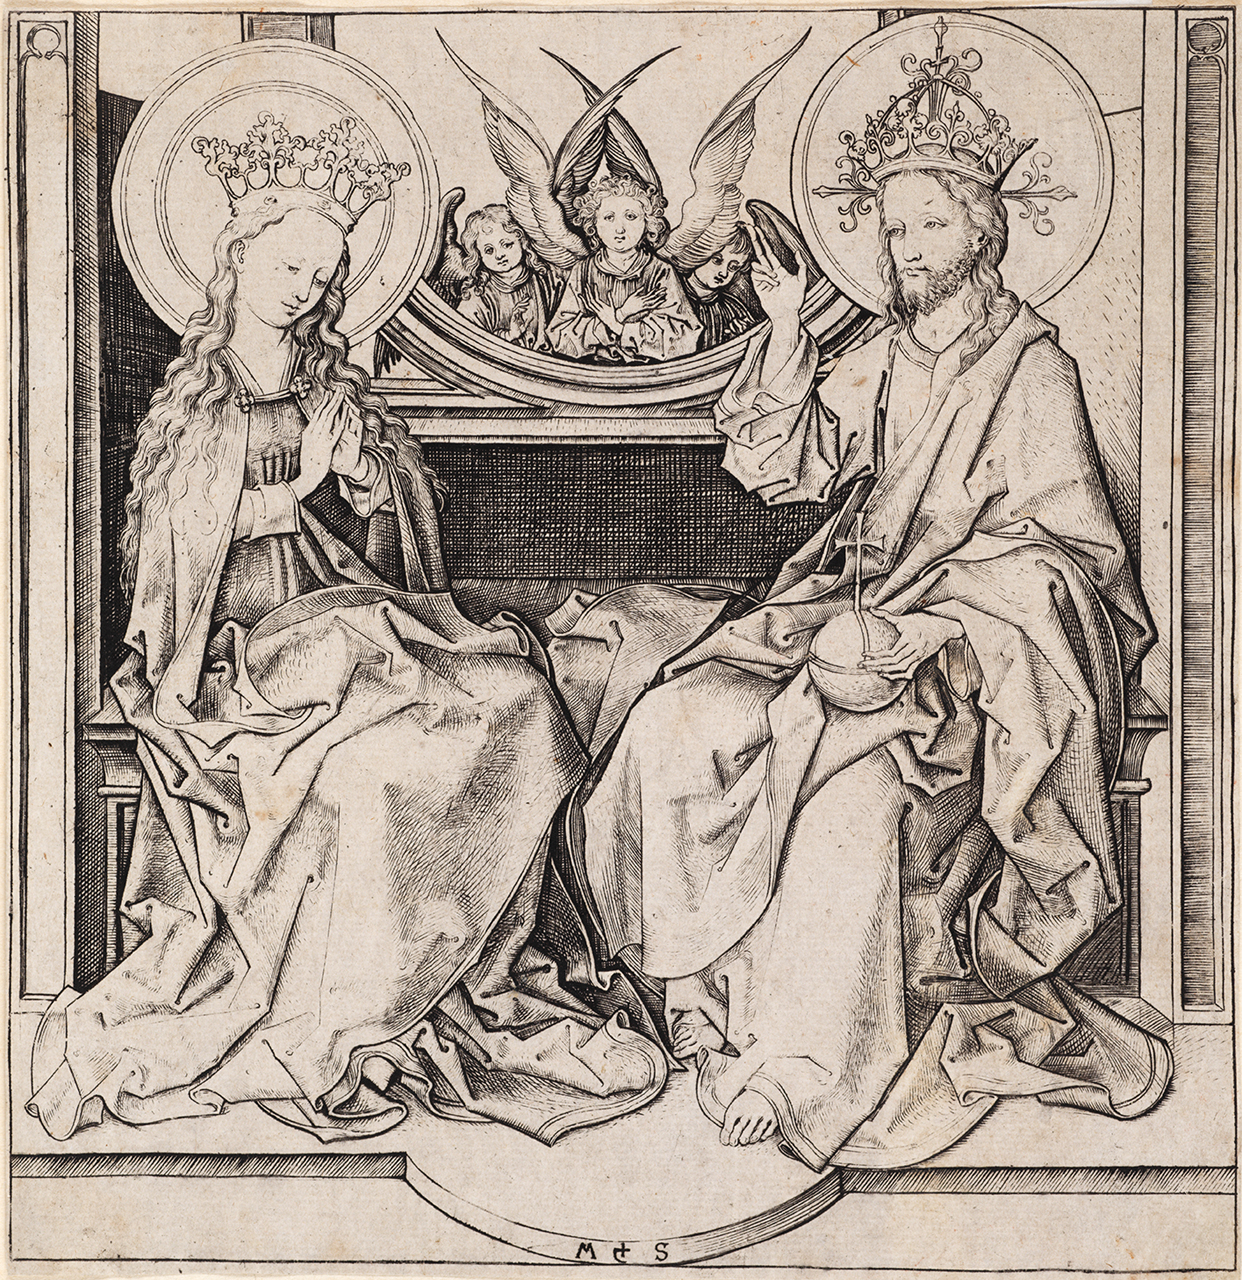 Schongauer, Martin (c. 1430-91) Christ Blessing the Virgin (1480-90) engraving image (sheet trimmed to image) 15.1cm (H) x 16.1cm (W) 2015.0025.000.000 Baillieu Library Print Collection, University of Melbourne. Purchased, 2015.